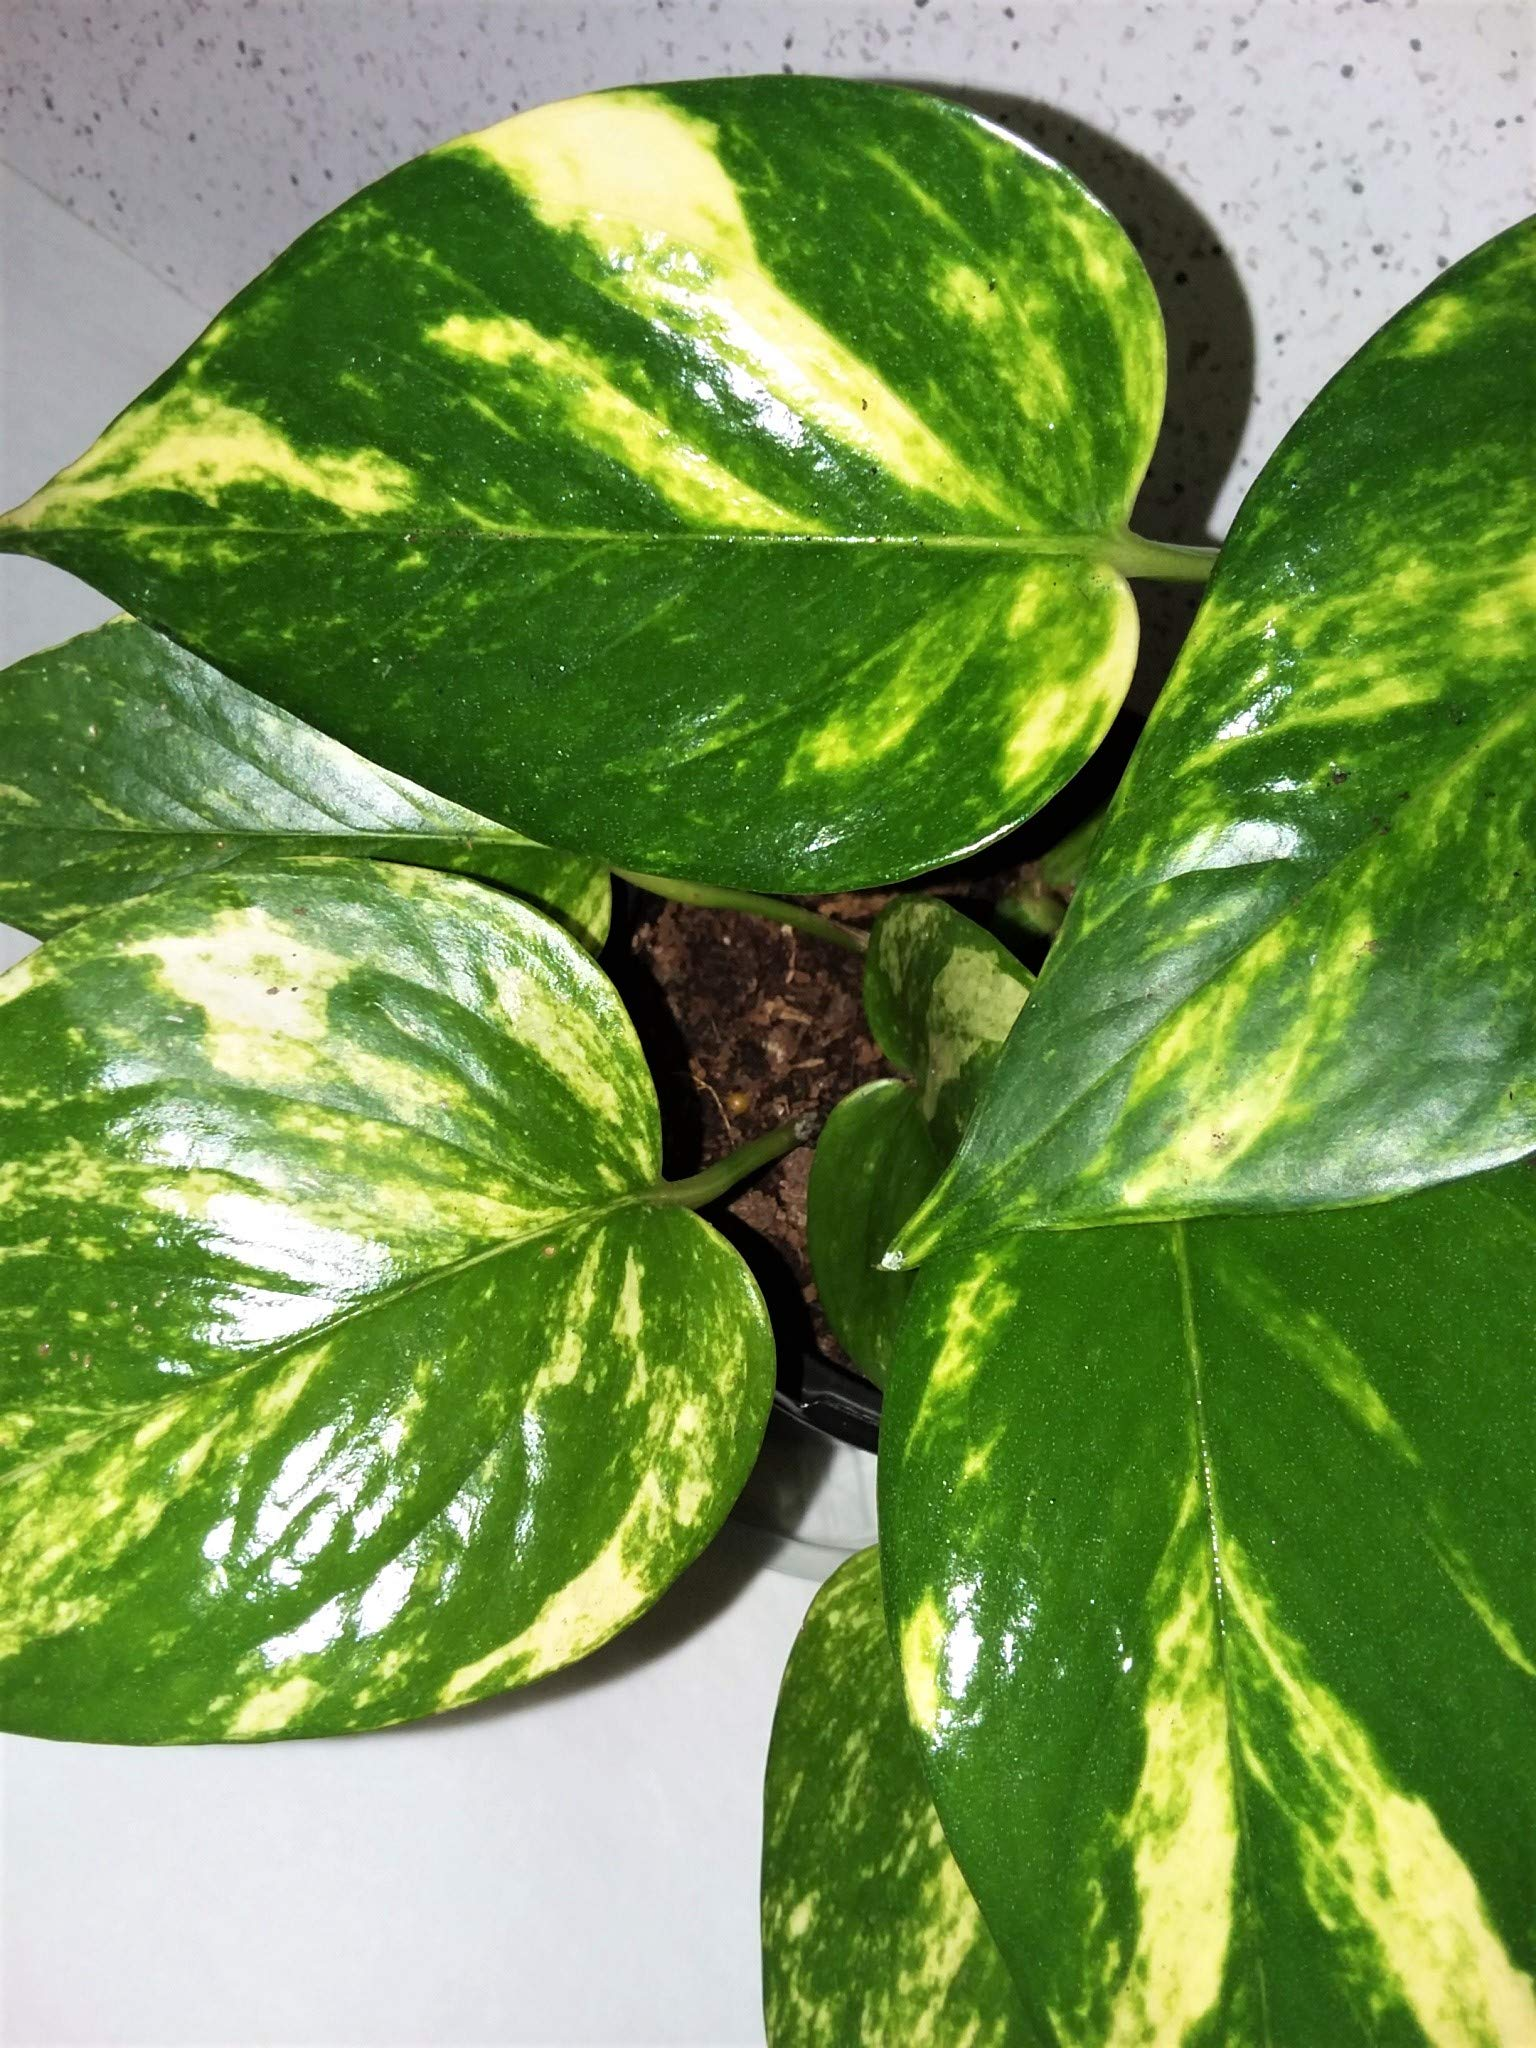 Emeritus Gardens New Plant: The Extra Gold Pothos, with Our Allergy Free Potting and Emeritus Gardens Plant Food